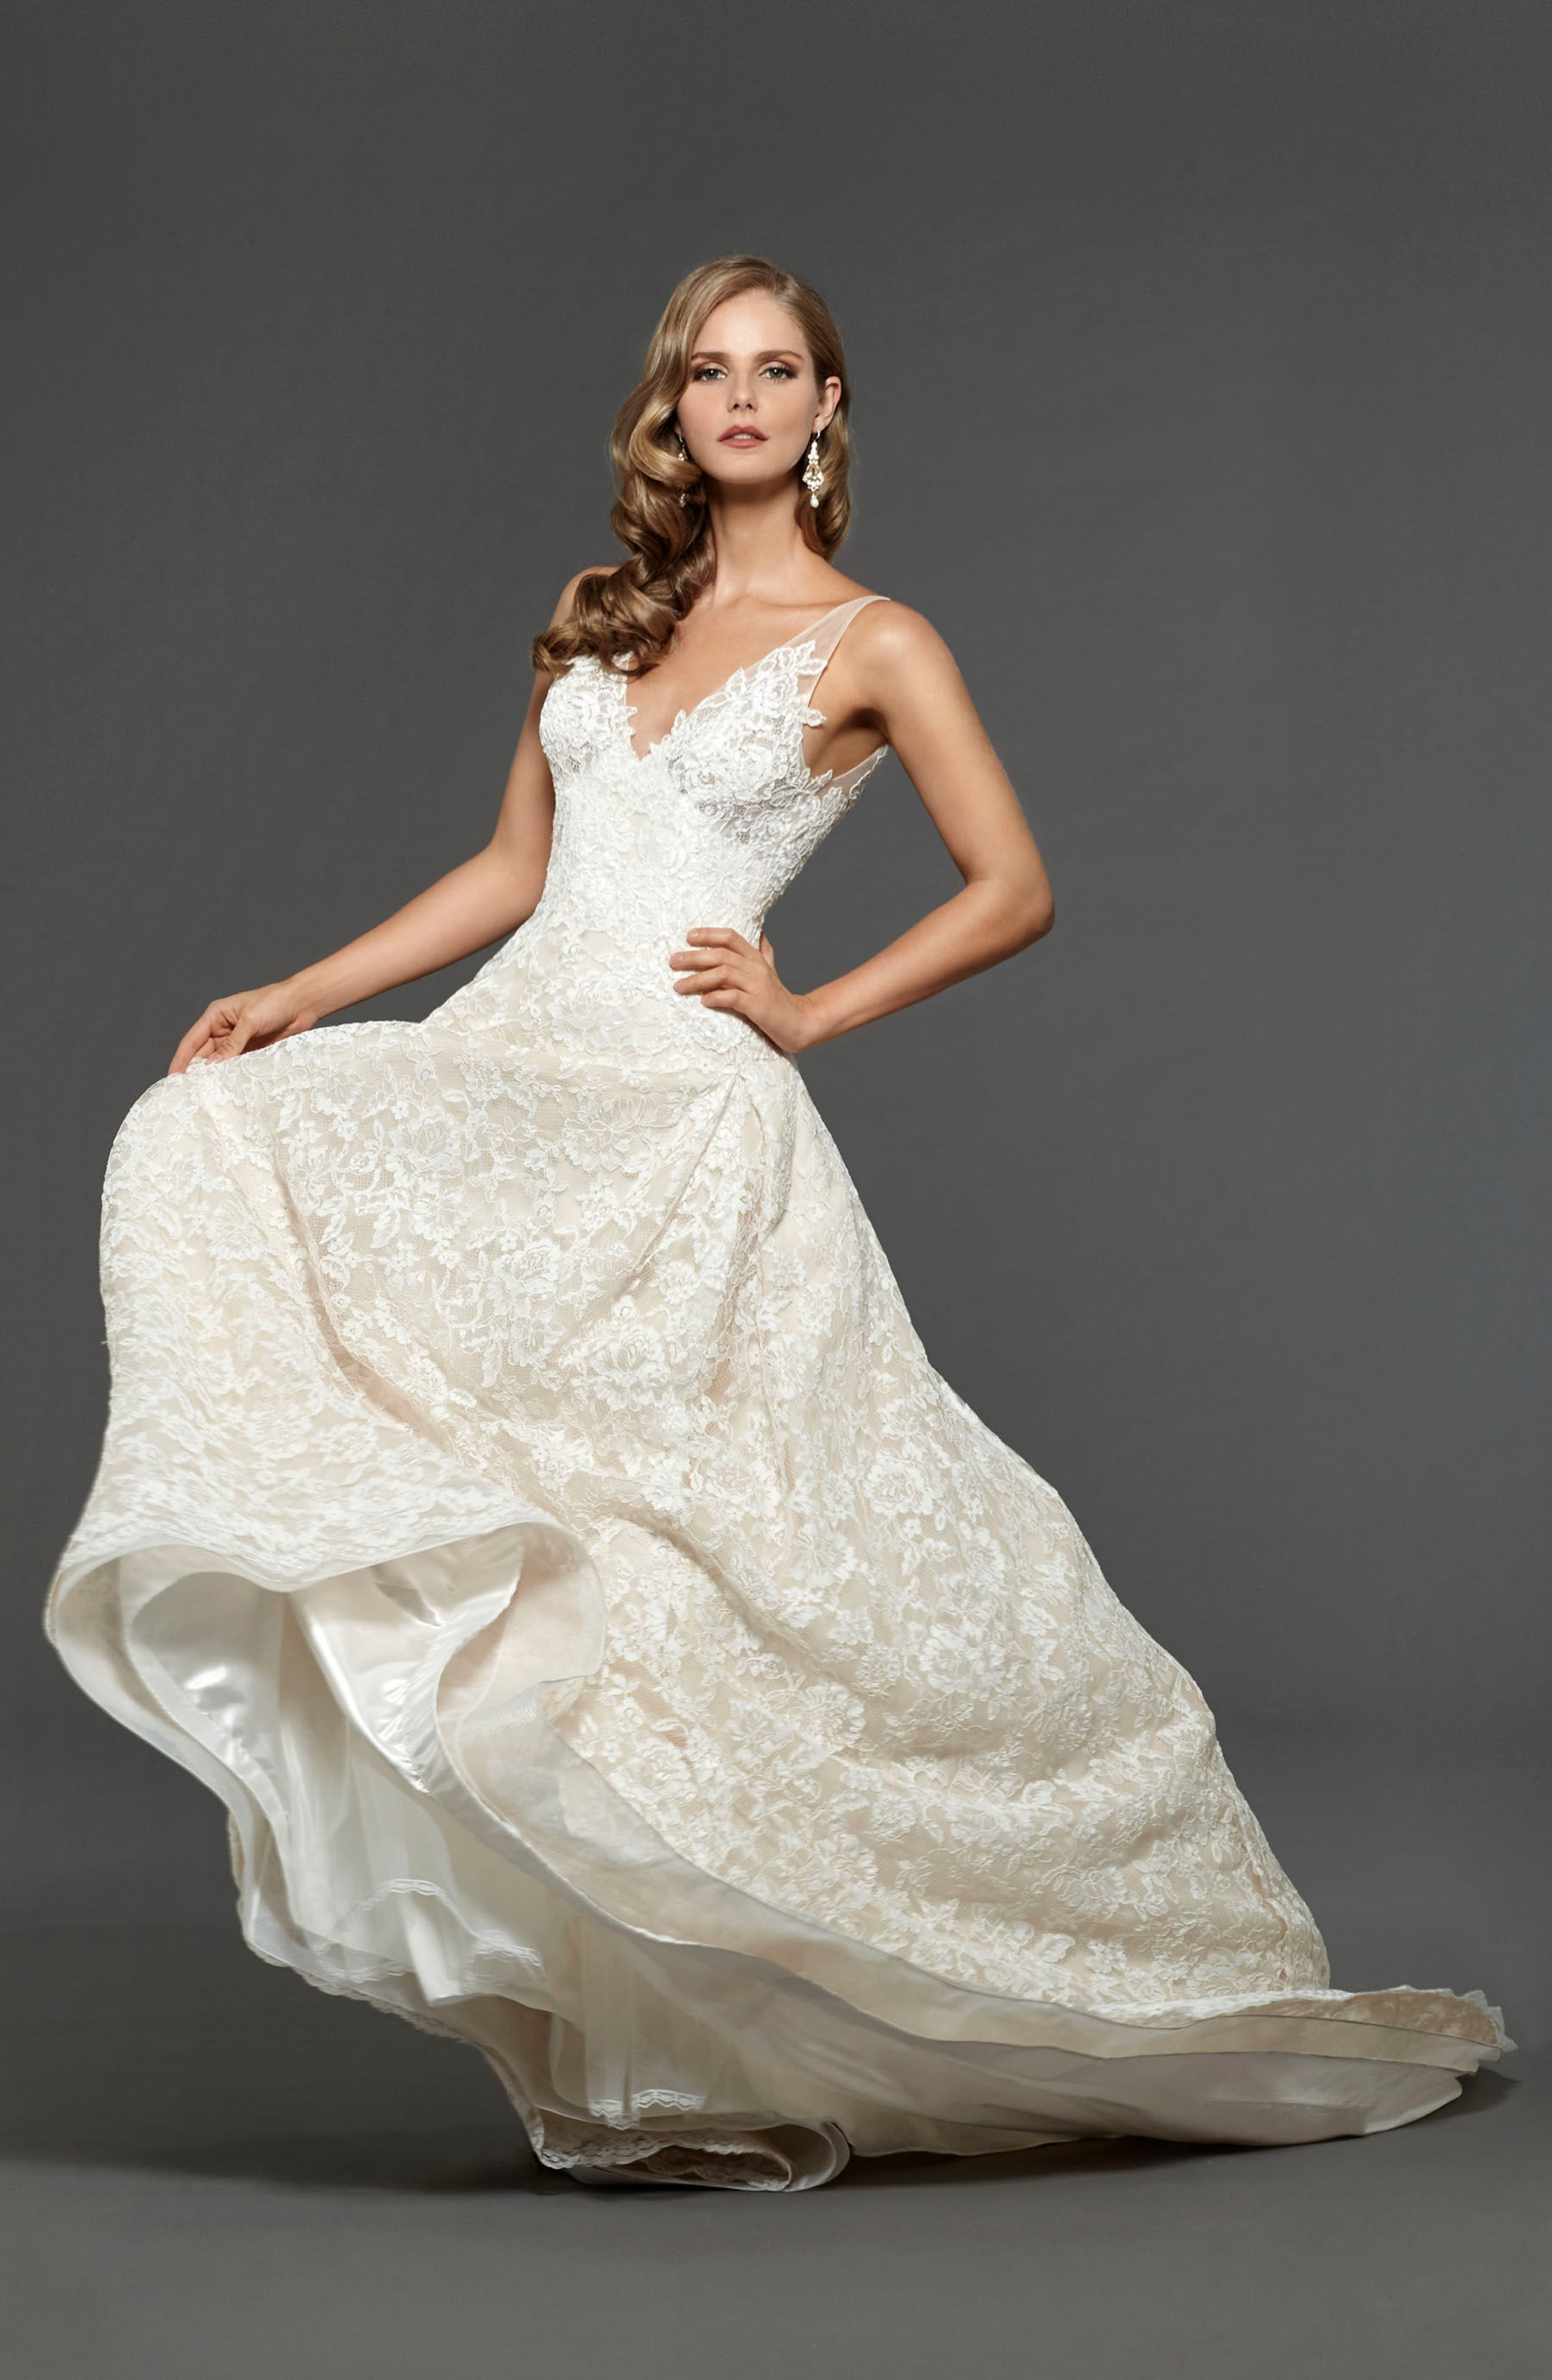 Suzanna Allover Lace Gown,                             Alternate thumbnail 4, color,                             900